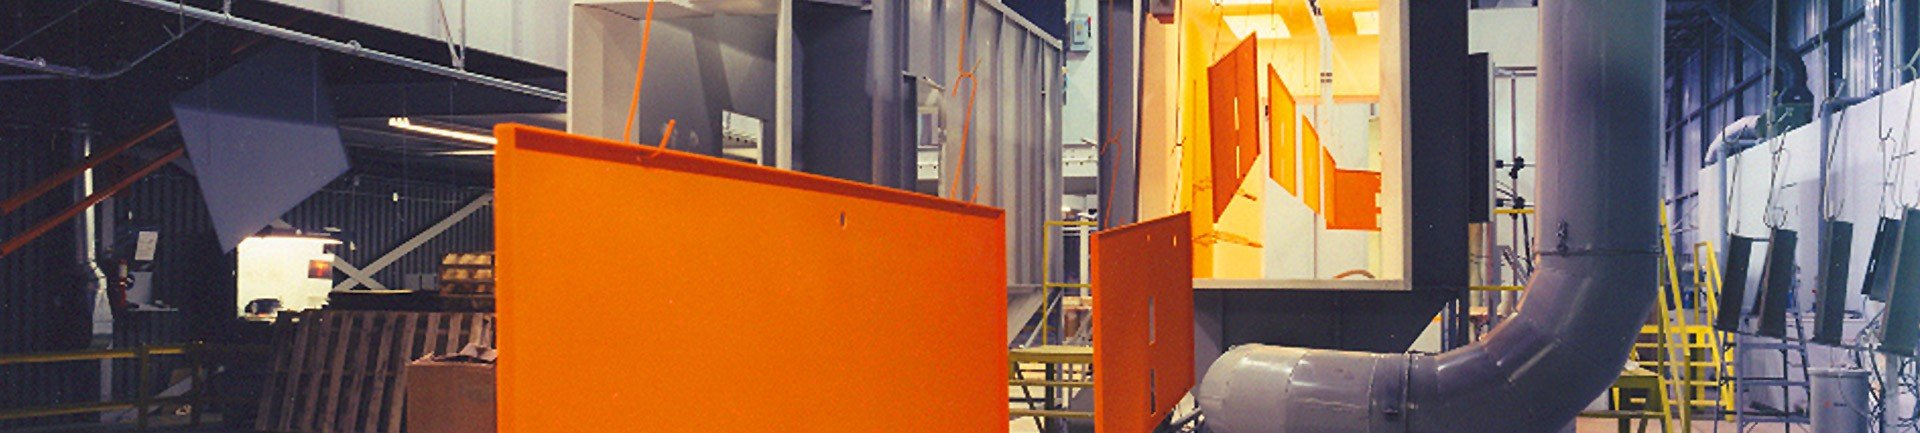 Overhead conveyor automates powder coating line and saves labor costs compared to a batch handling system.